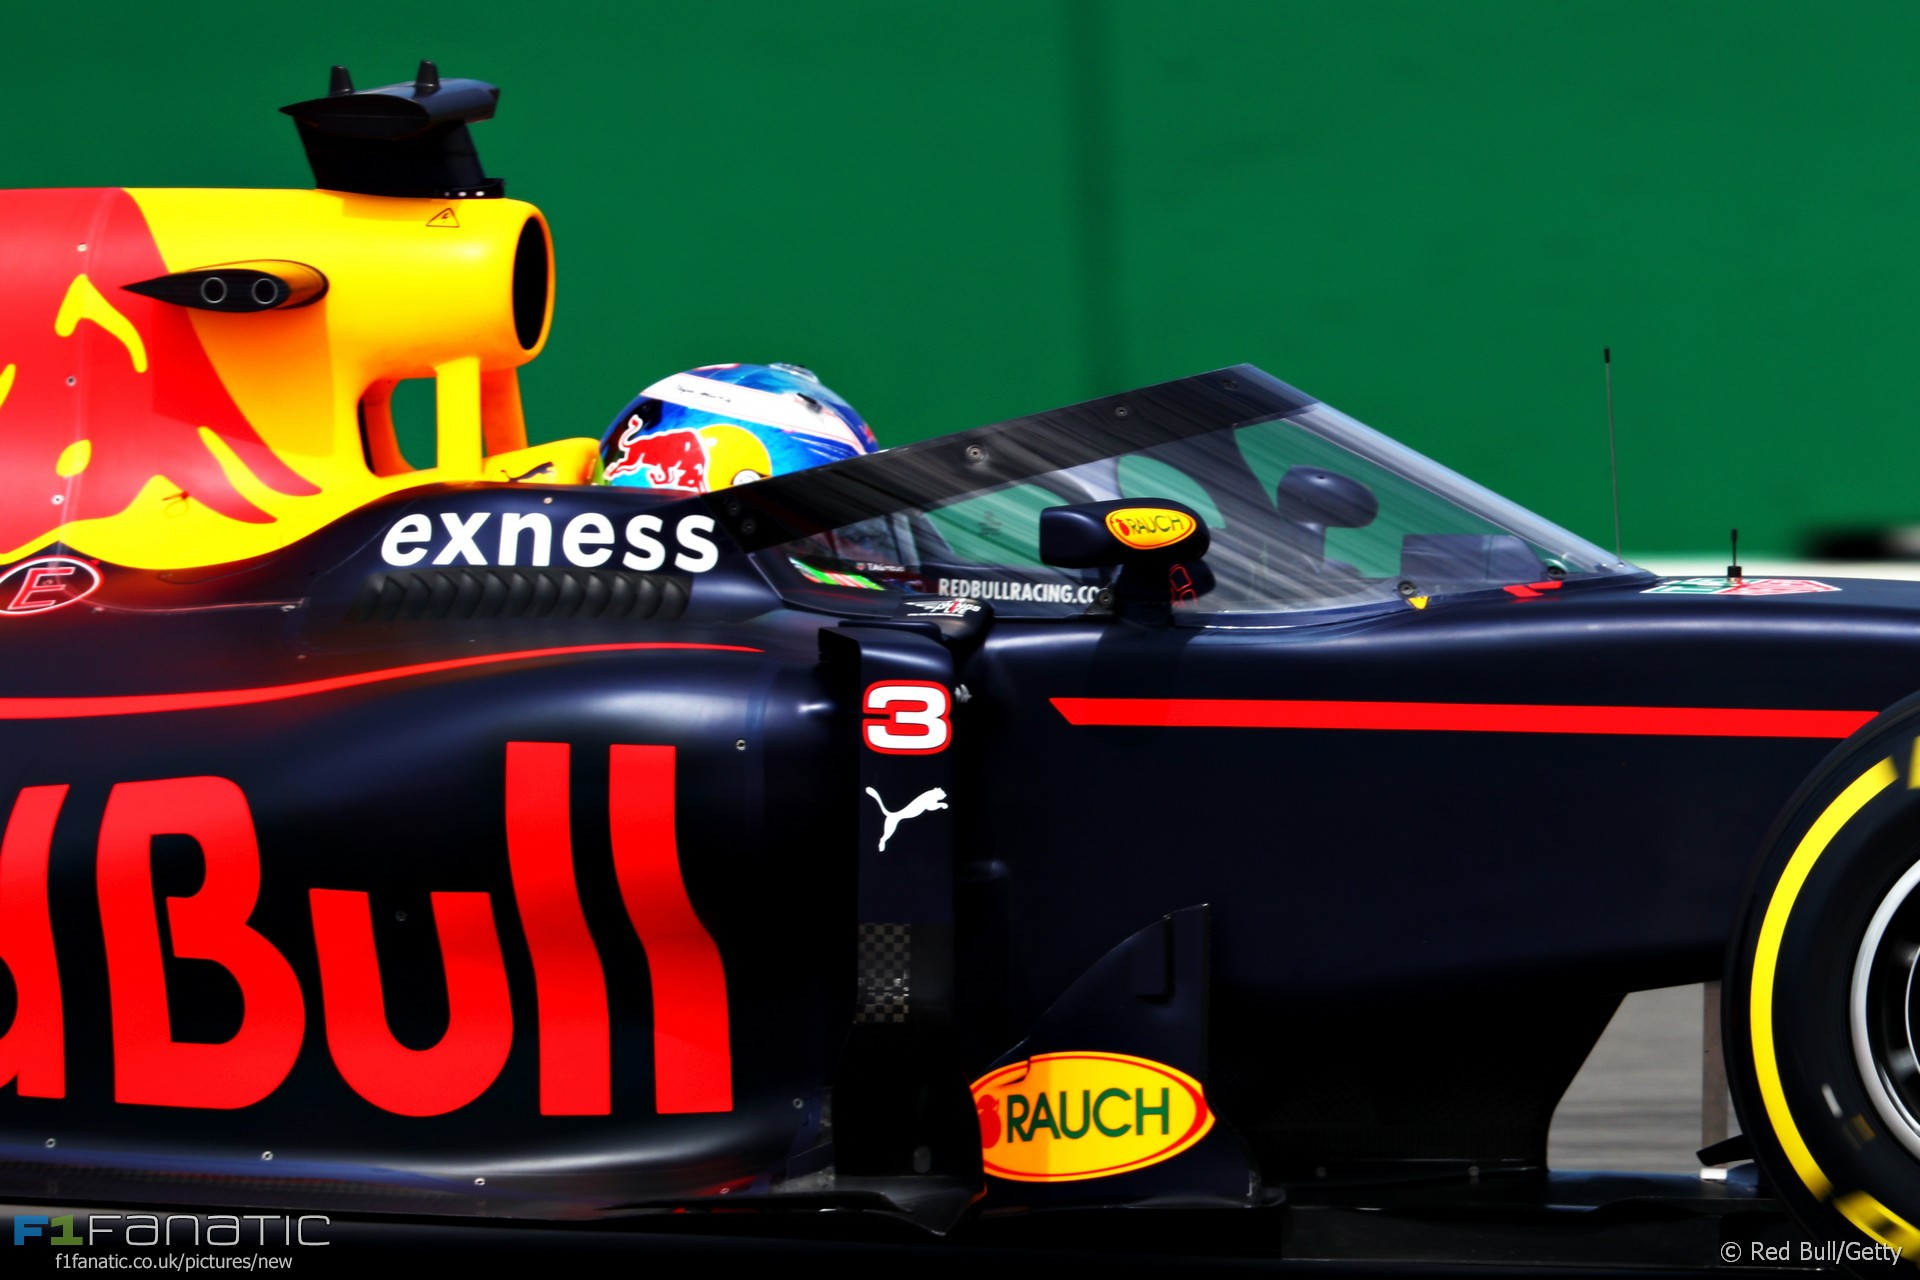 New changes to the look of the car can you guess what it is - Daniel Ricciardo Red Bull Sochi Autodrom 2016